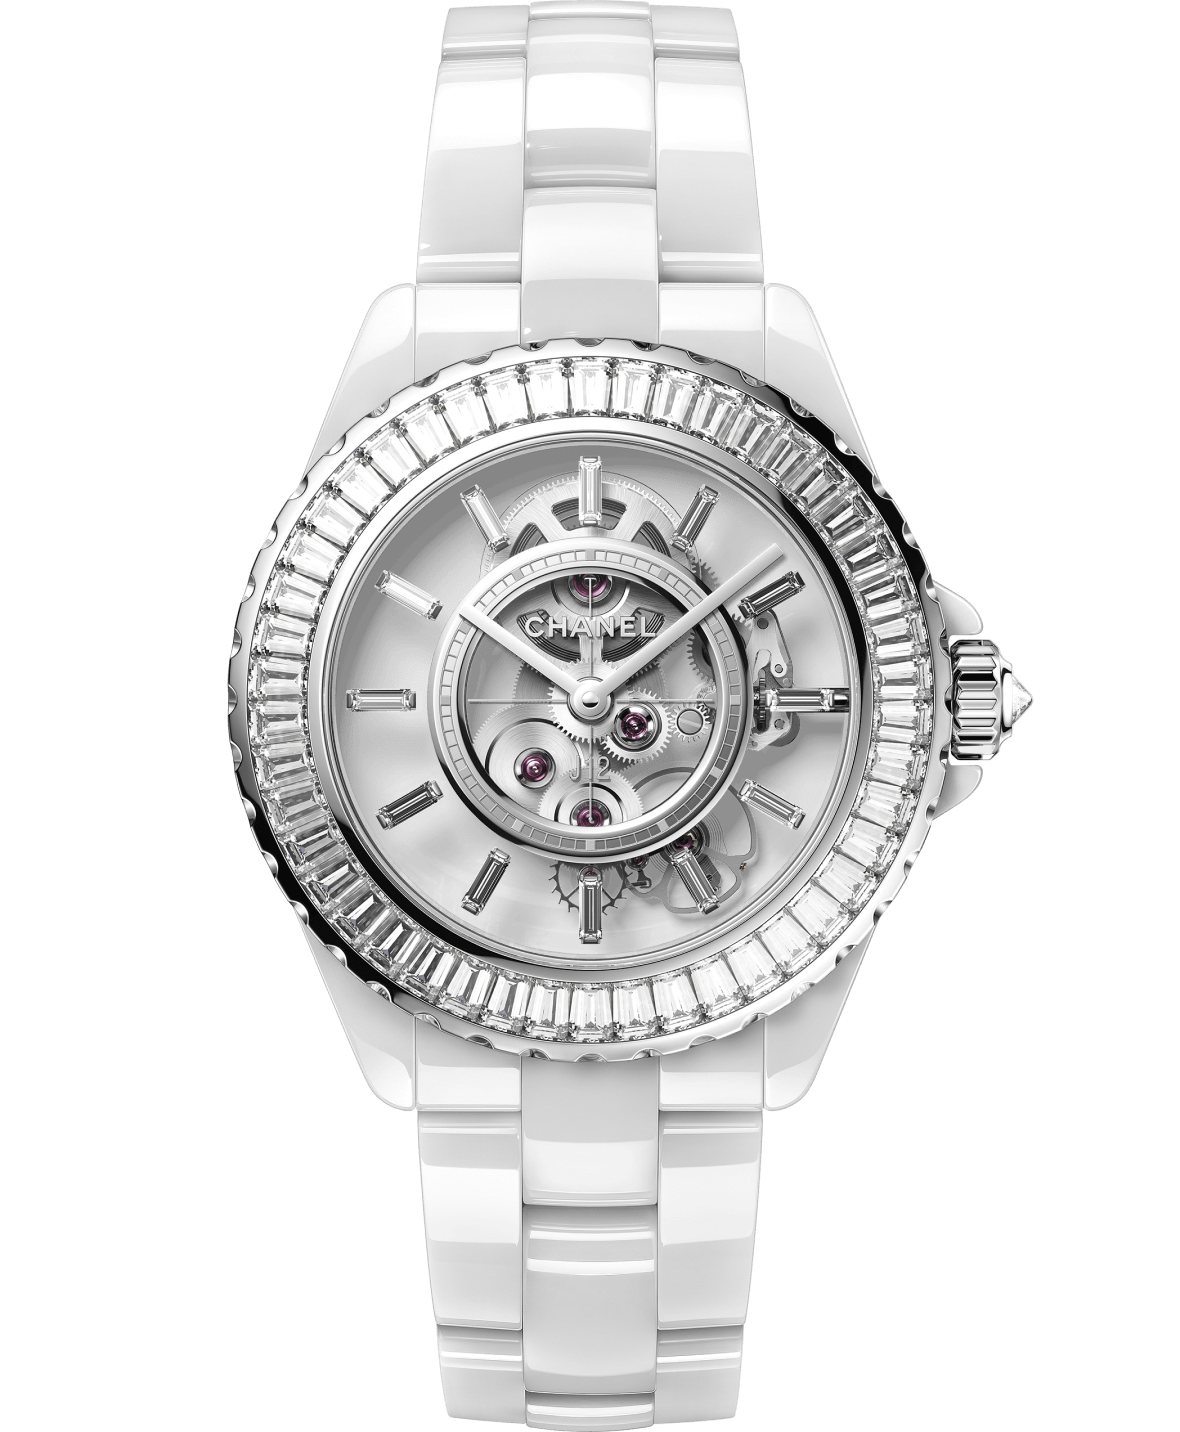 White H6825 J12 X-RAY watch